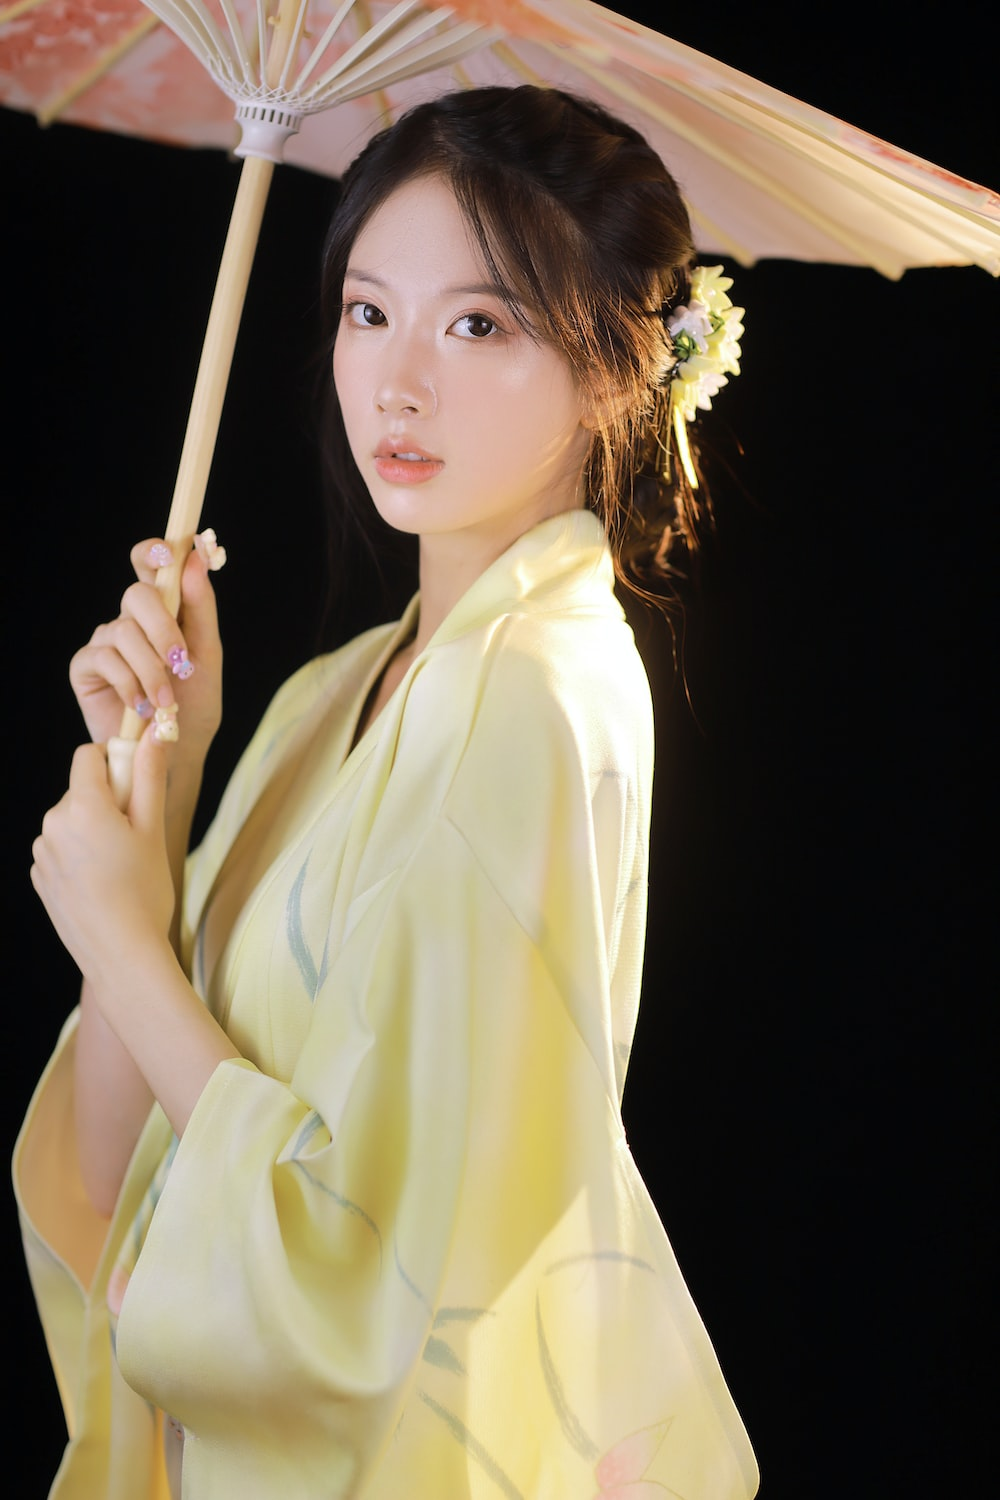 woman in yellow robe holding brown wooden stick